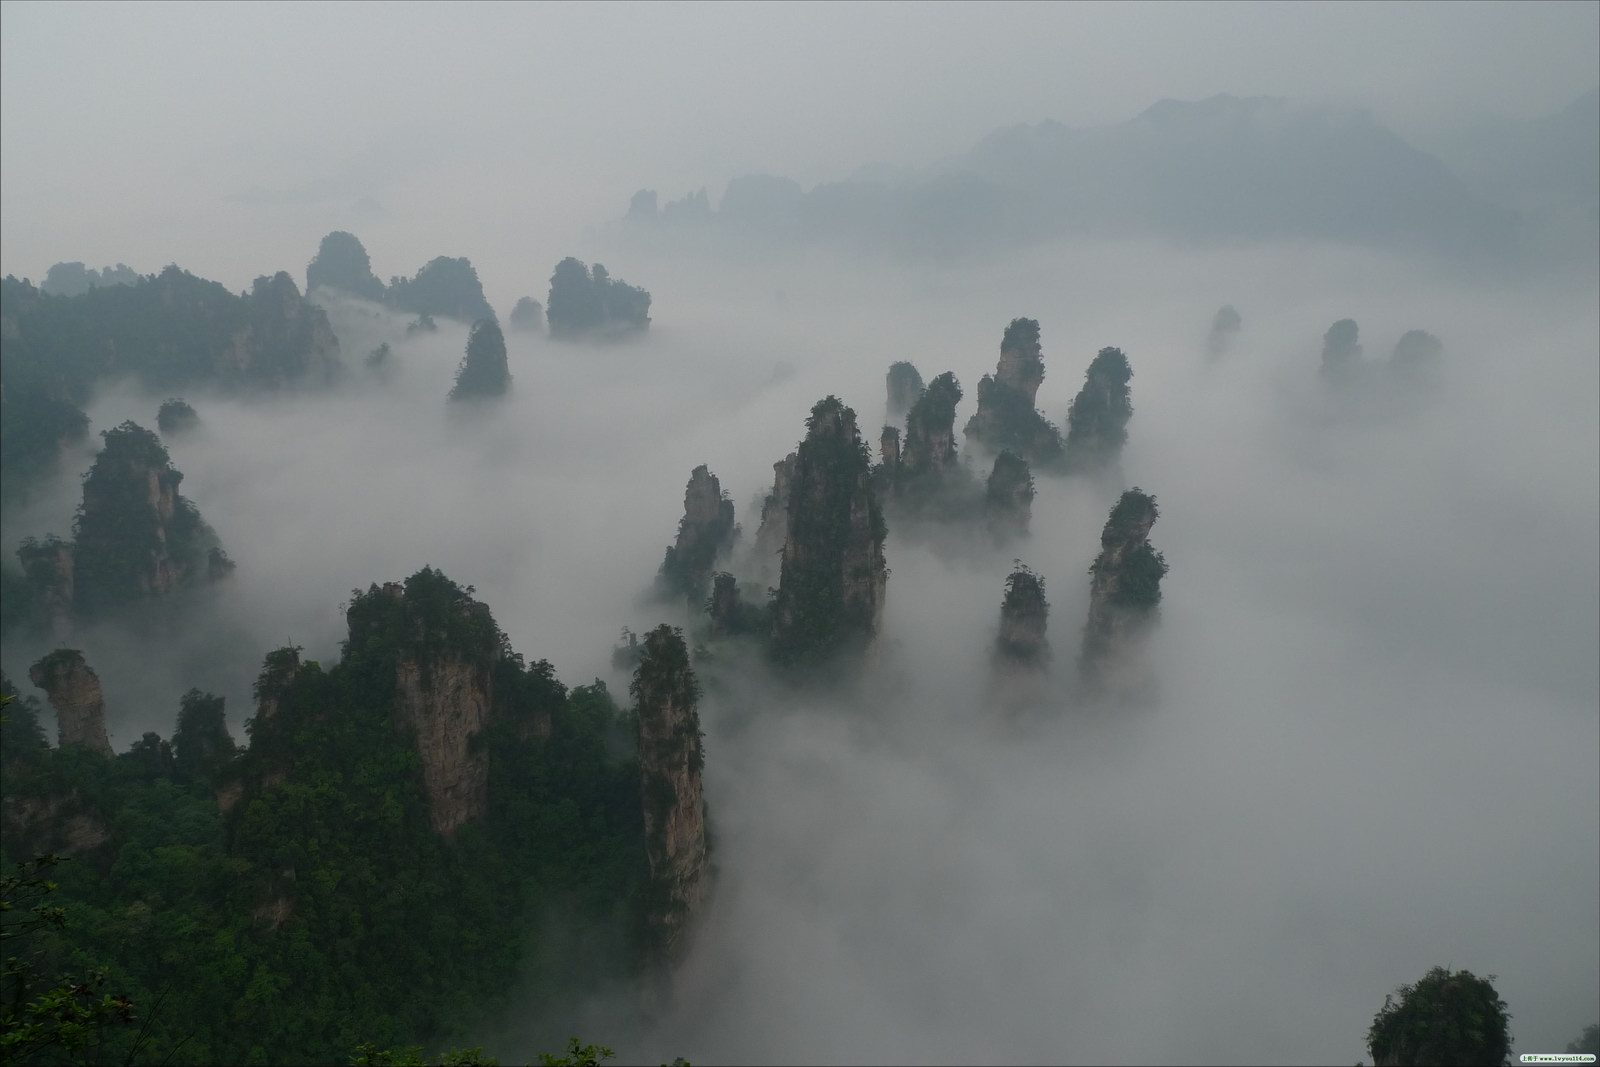 Mist, Zhangjiajie National Forest Park, China